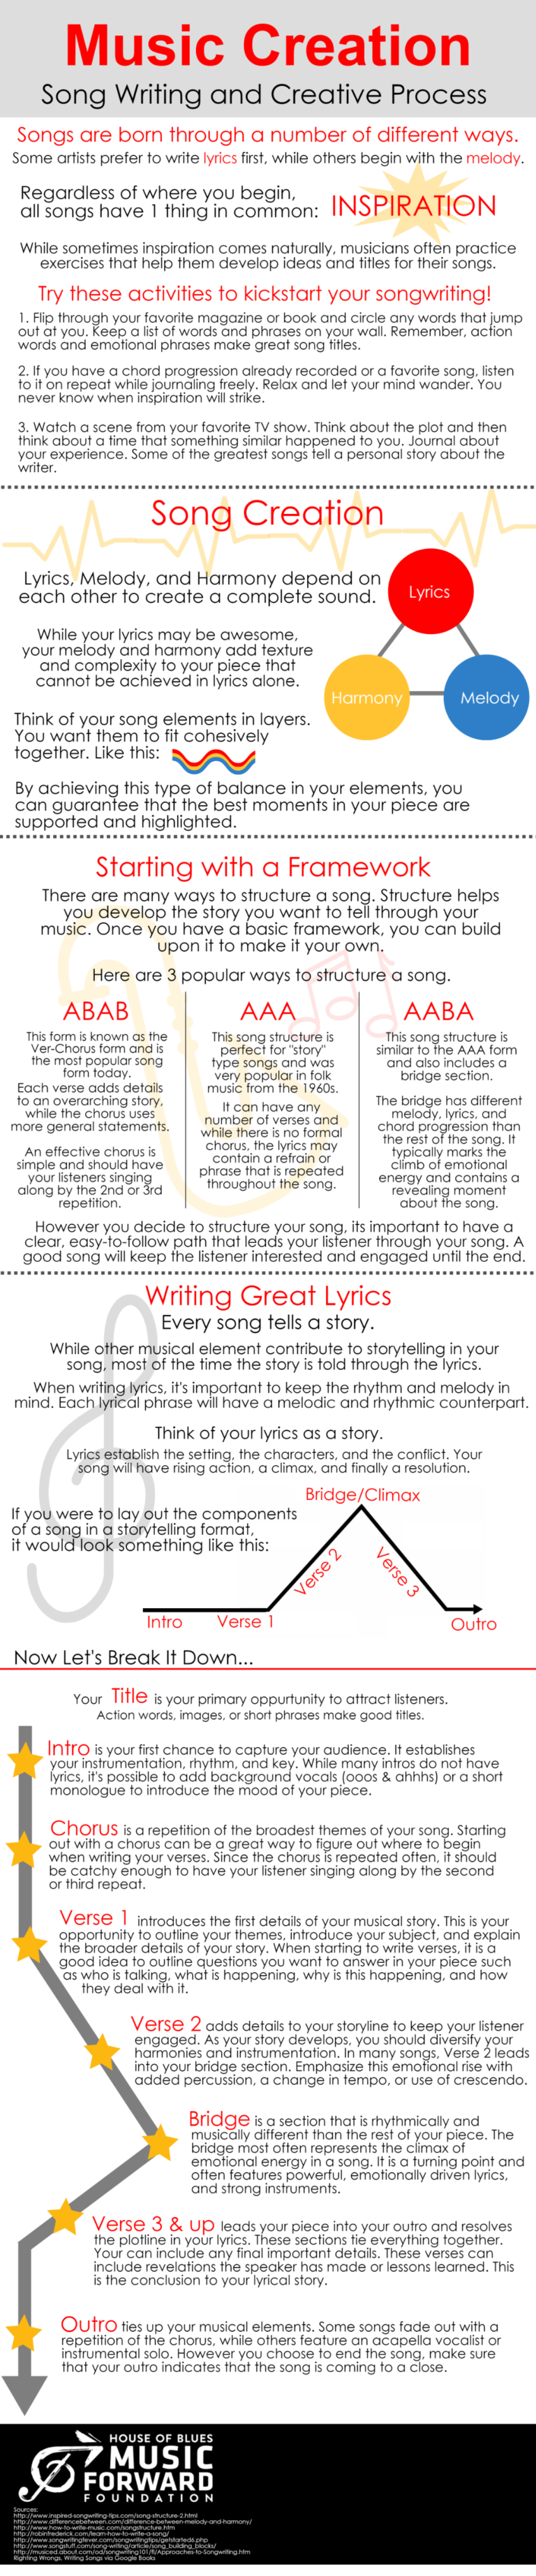 creative songwriting techniques